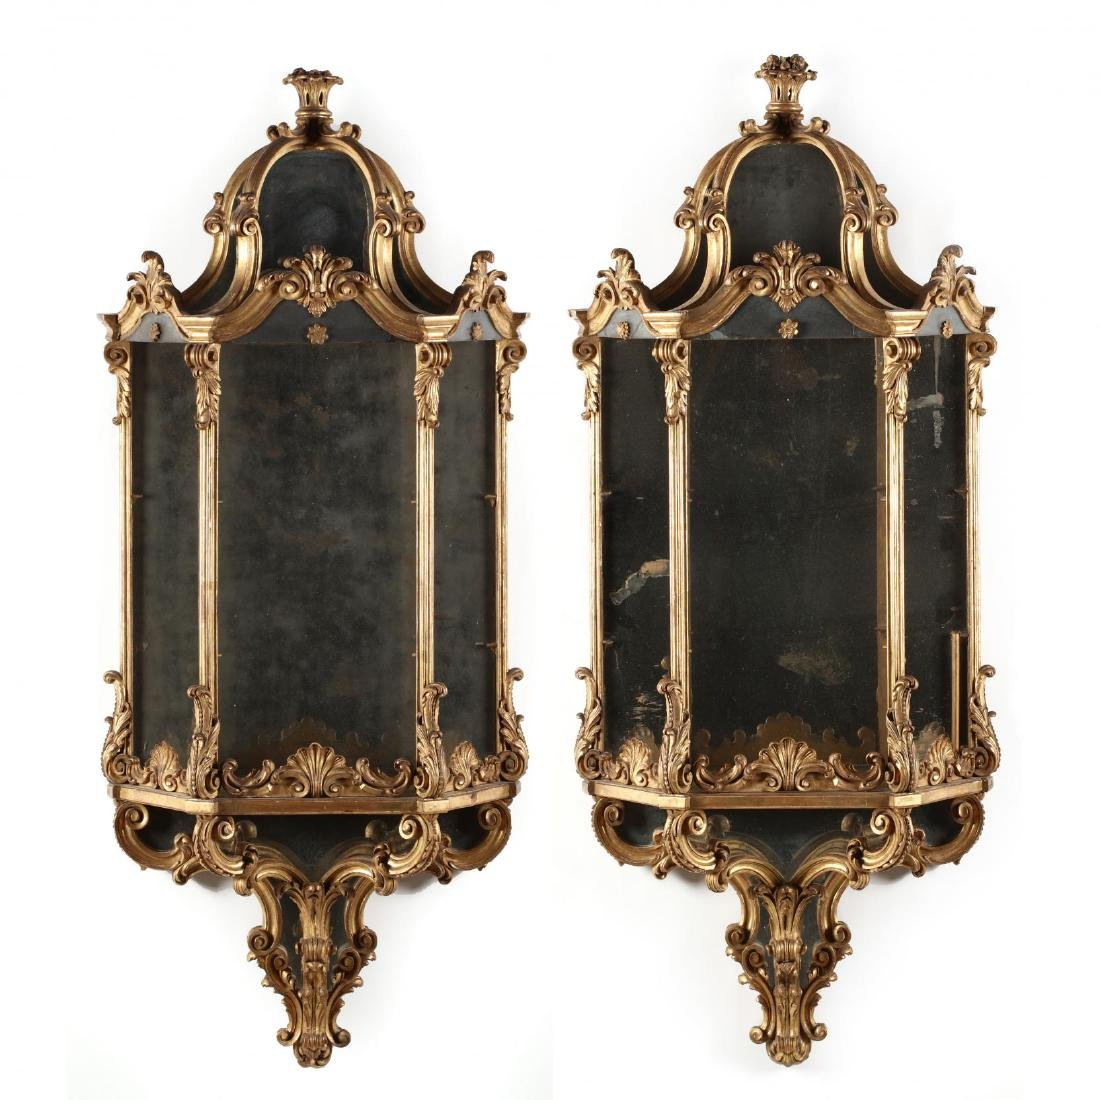 Pair of Classical Carved and Gilt Mirrored Wall Mount